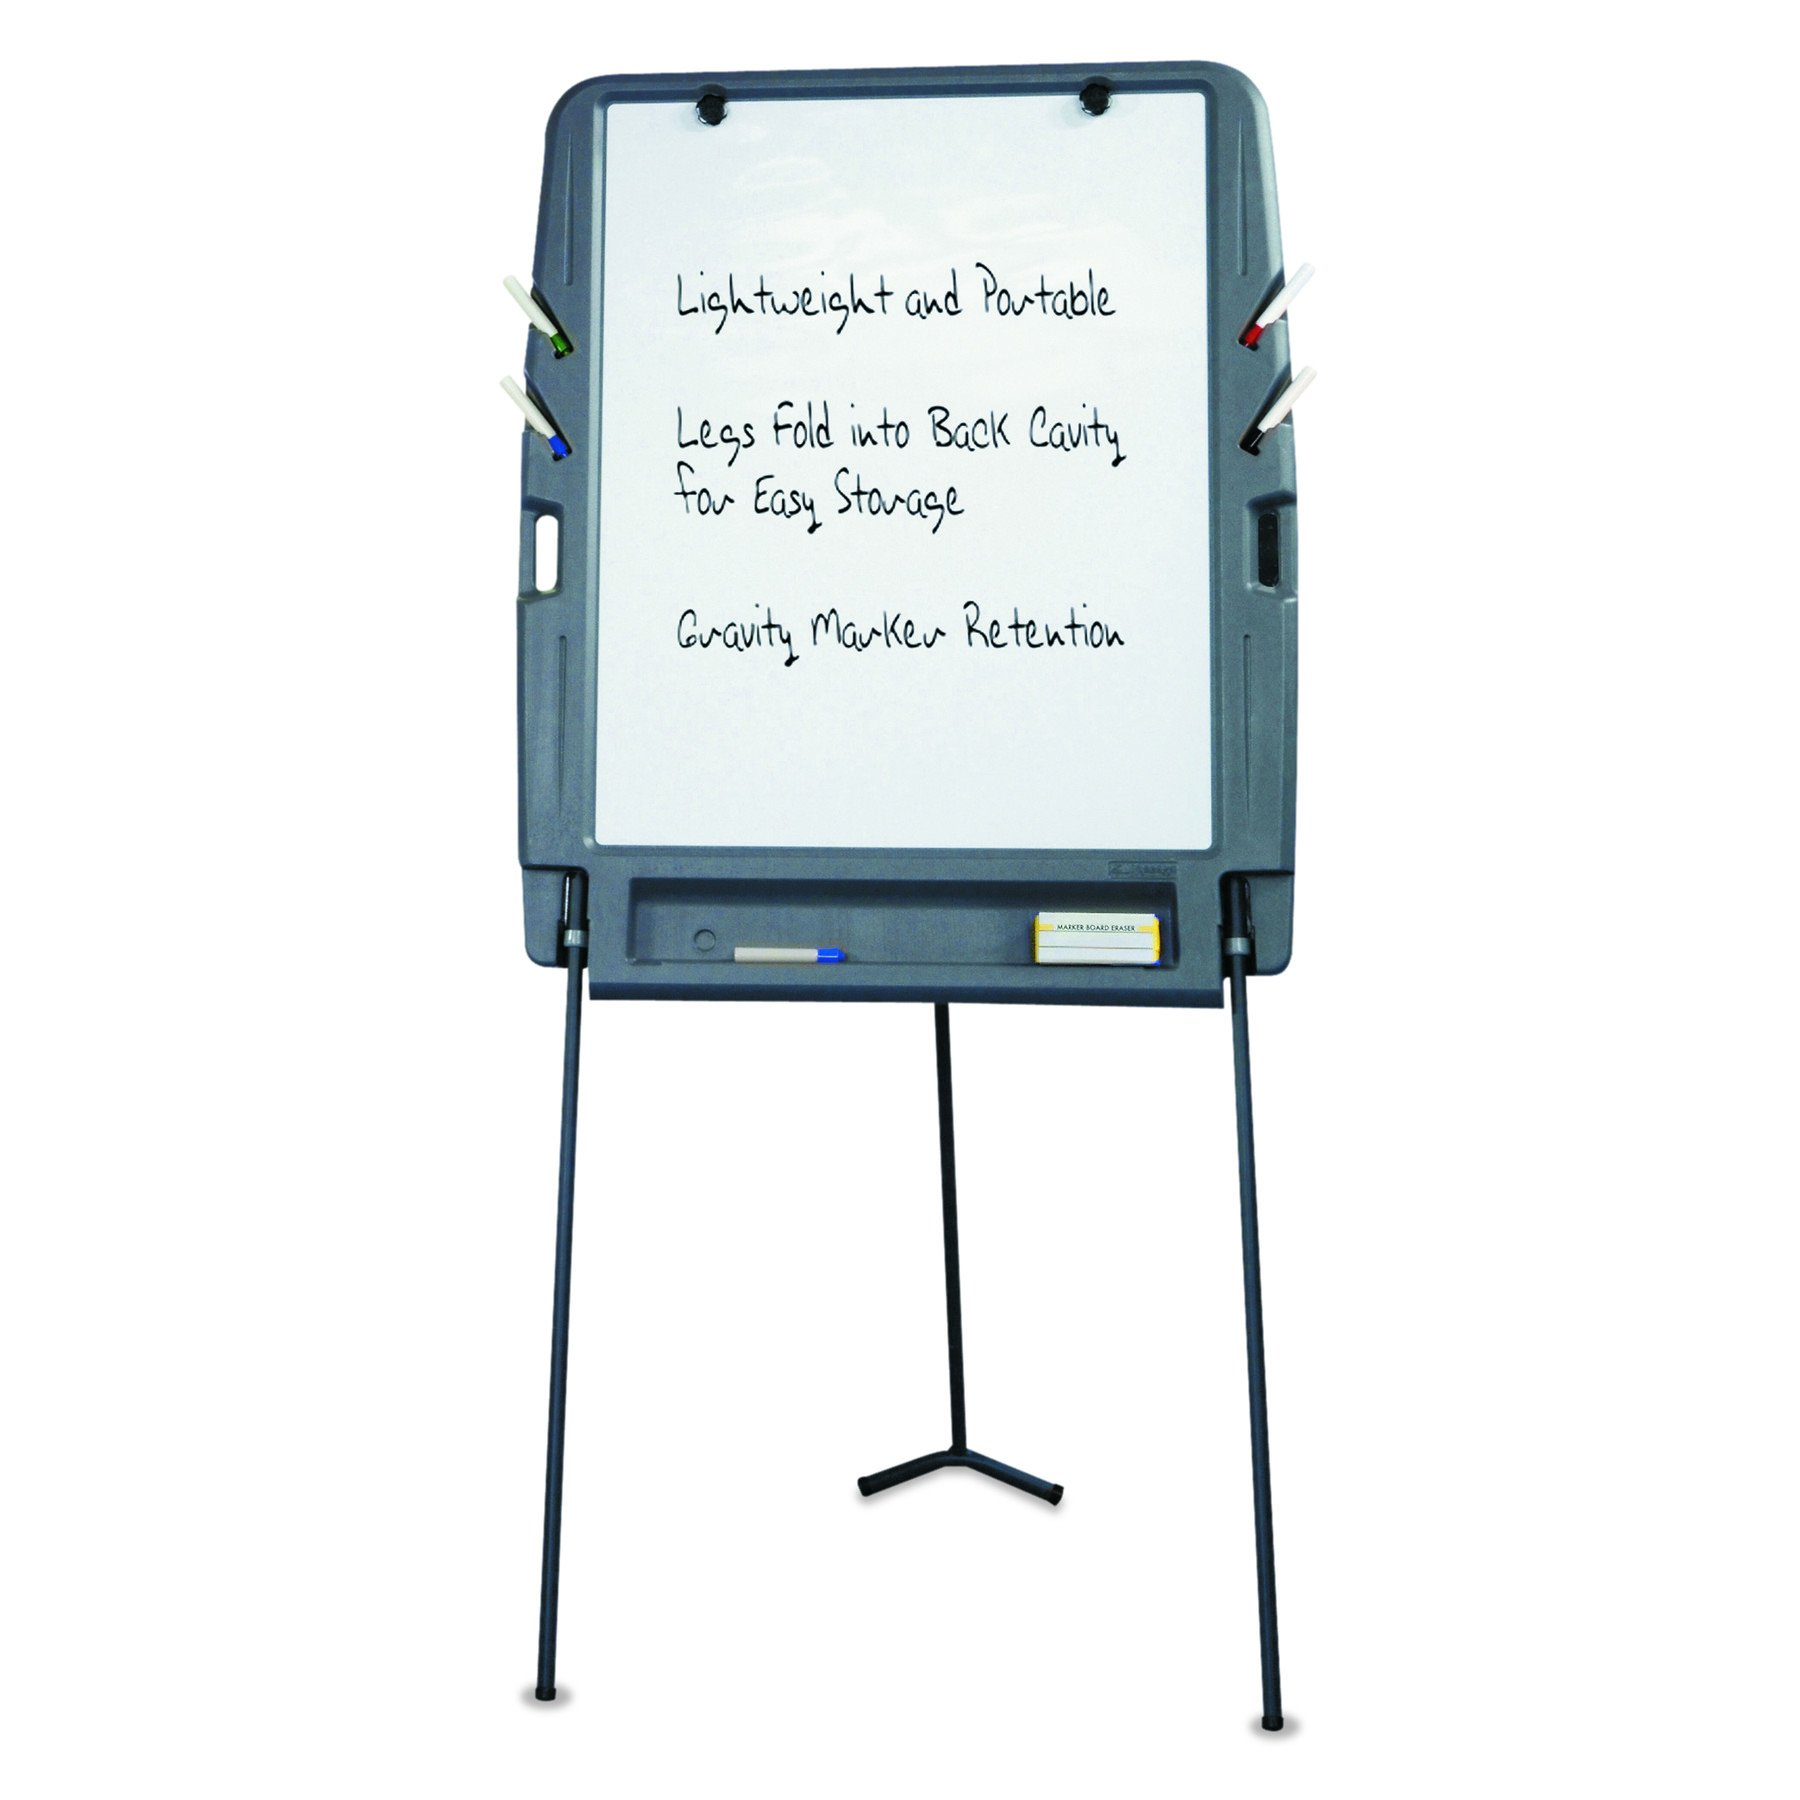 Iceberg ICE30227 Portable Flipchart Easel with Dry Erase Whiteboard Surface, Blow-molded Plastic Frame, 35'' Length x 30'' Width x 73'' Height, Charcoal